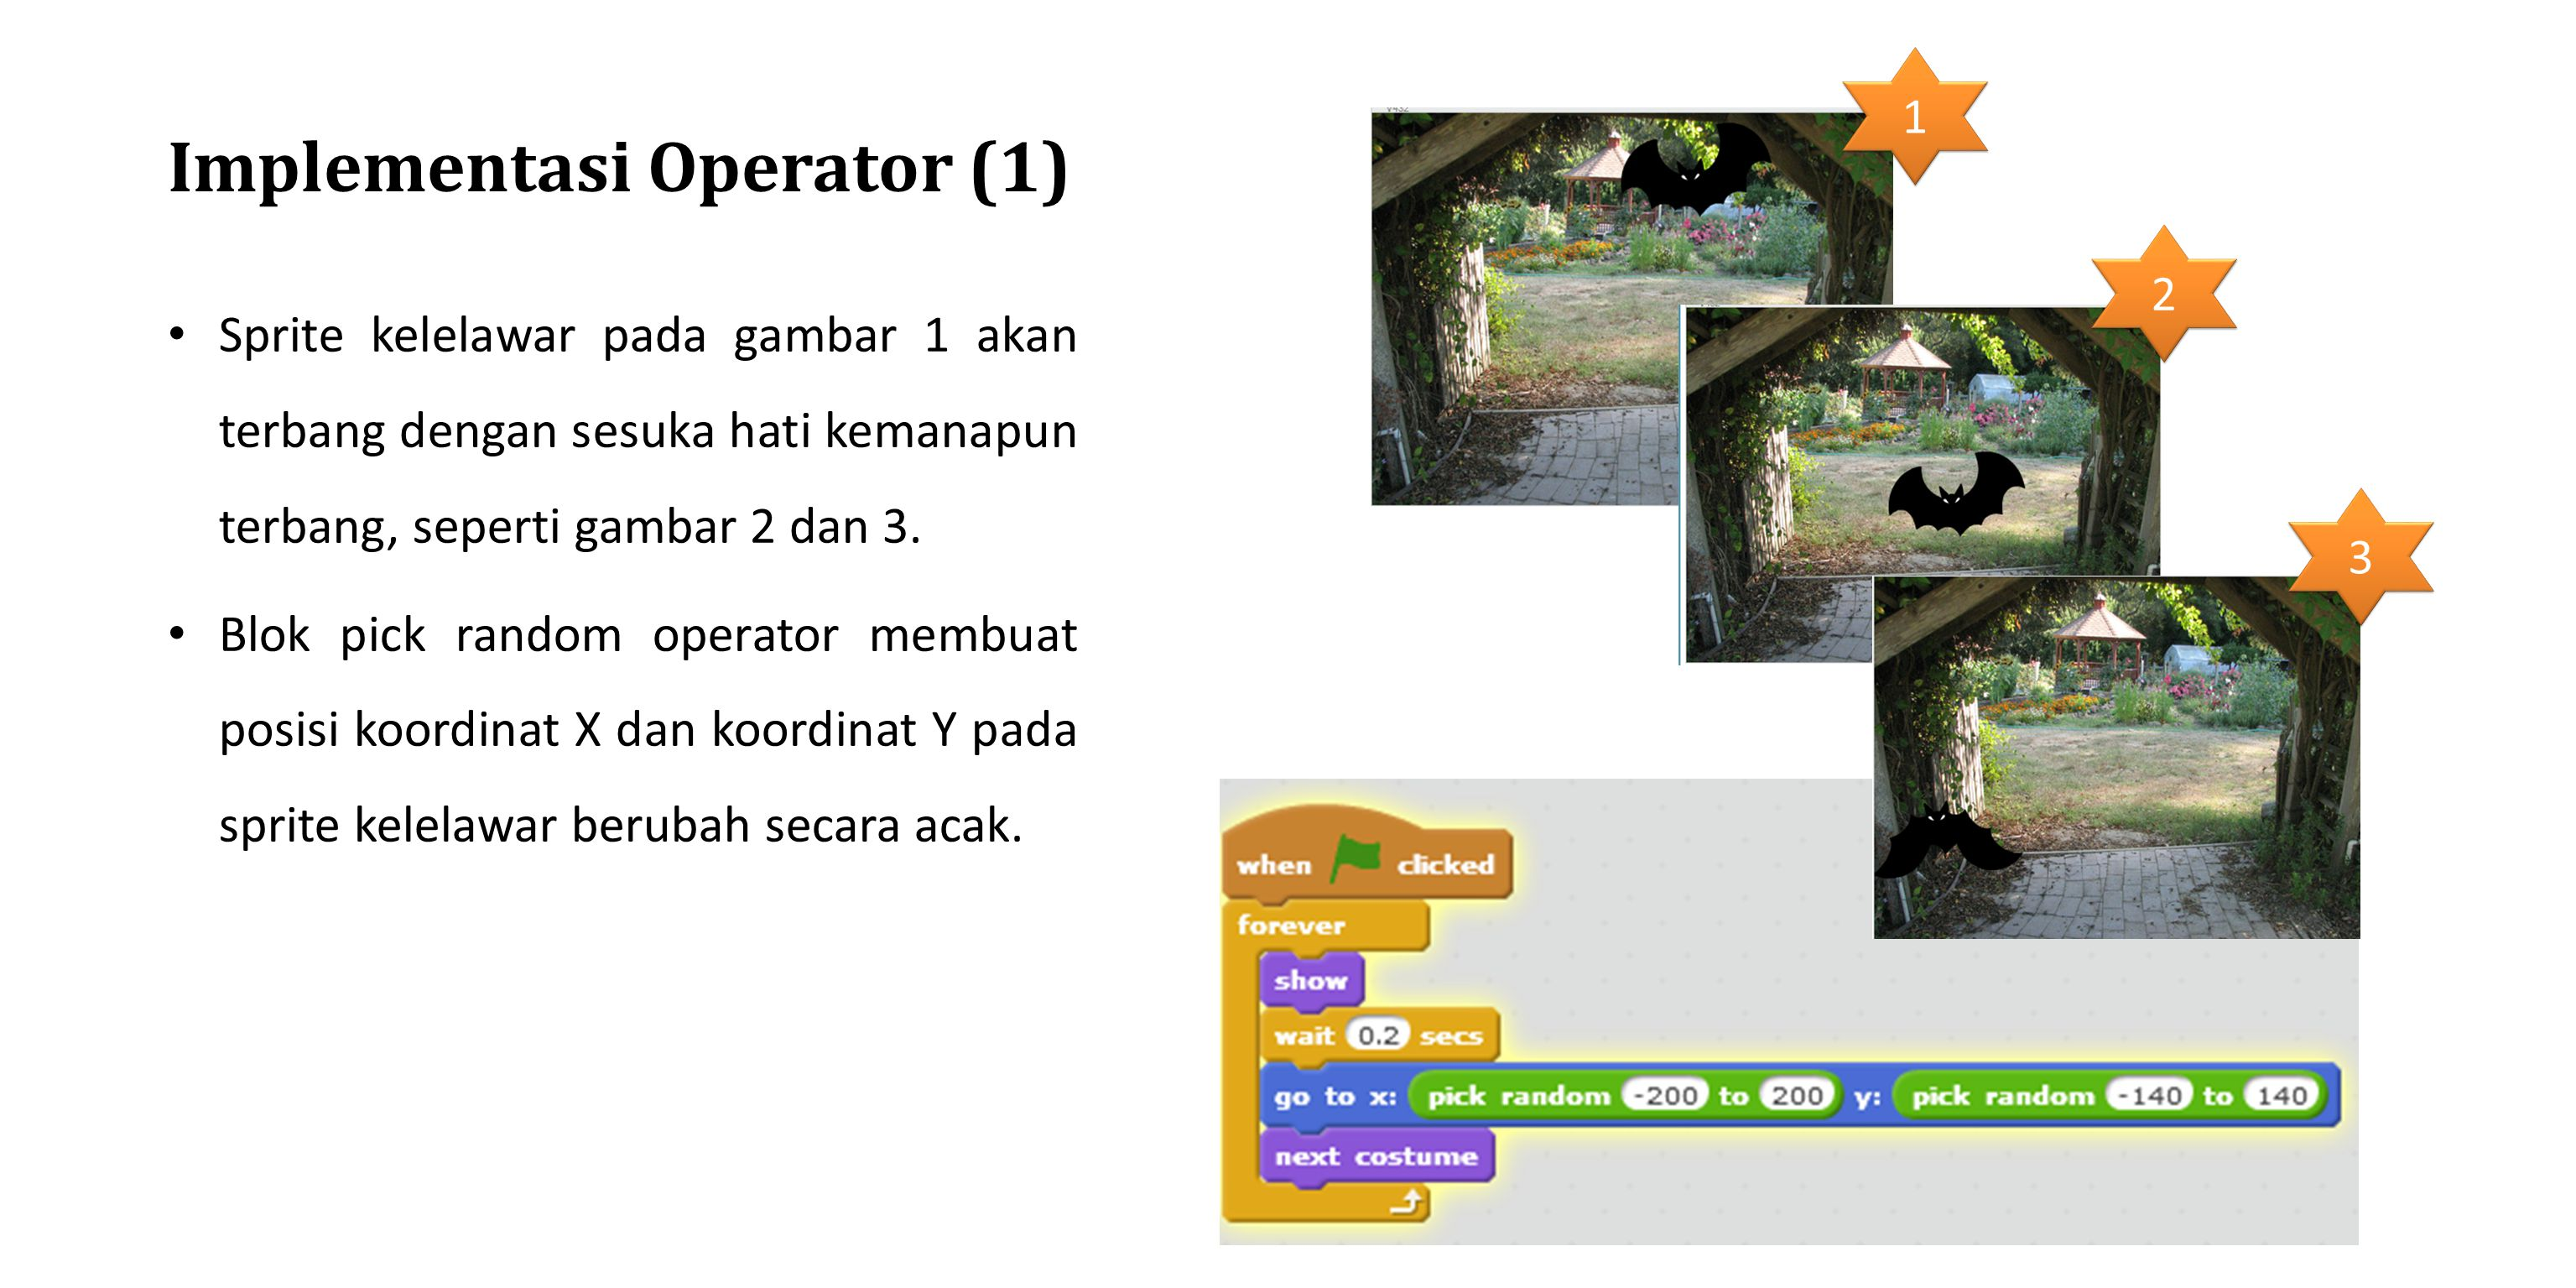 Implementasi Operator (1)